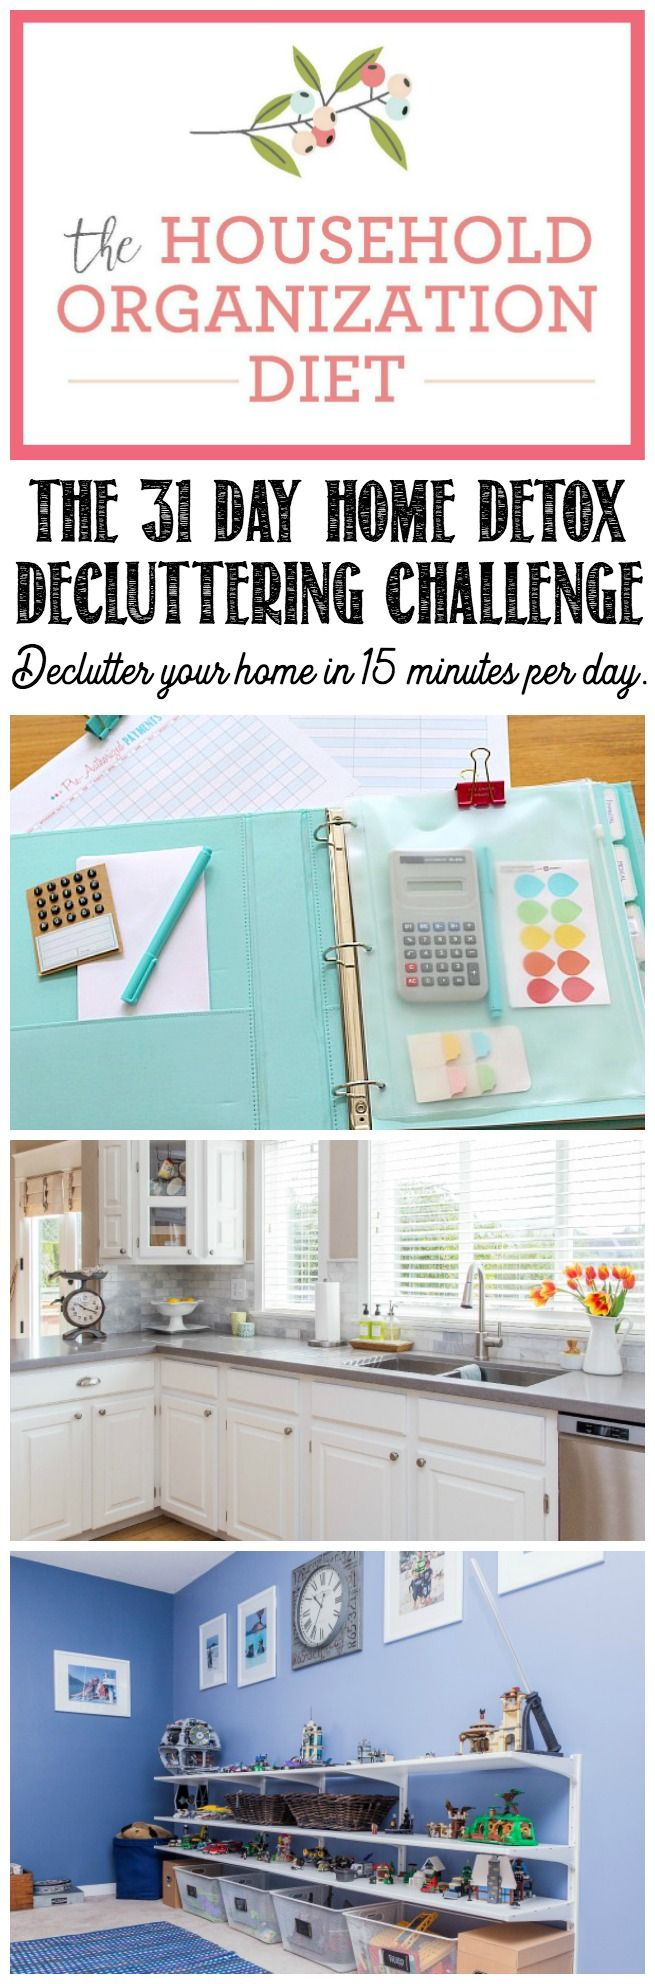 522 best Home // Organization images on Pinterest | Organization ...